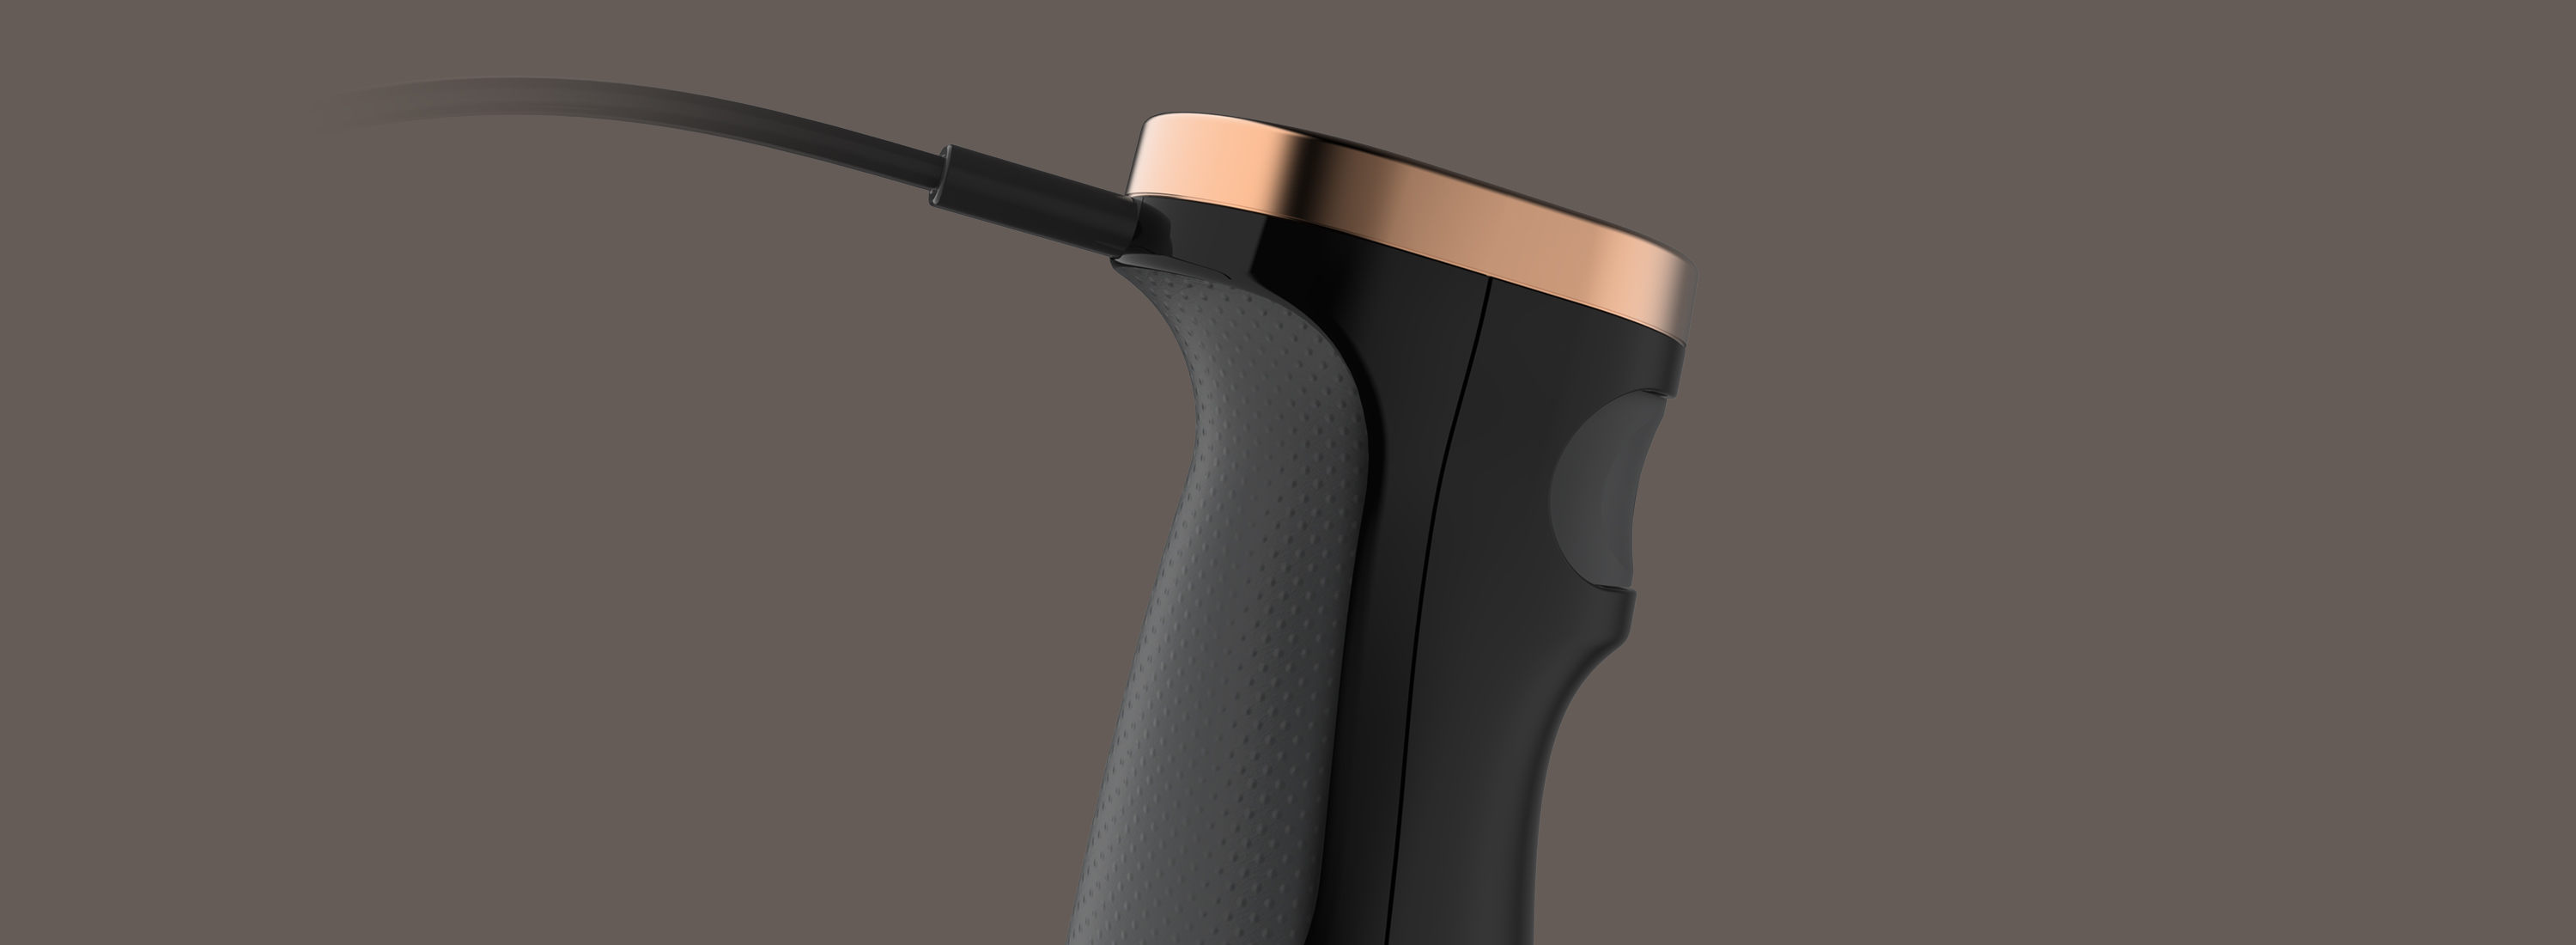 Arzum Technoart Hand Blender Design Rendering